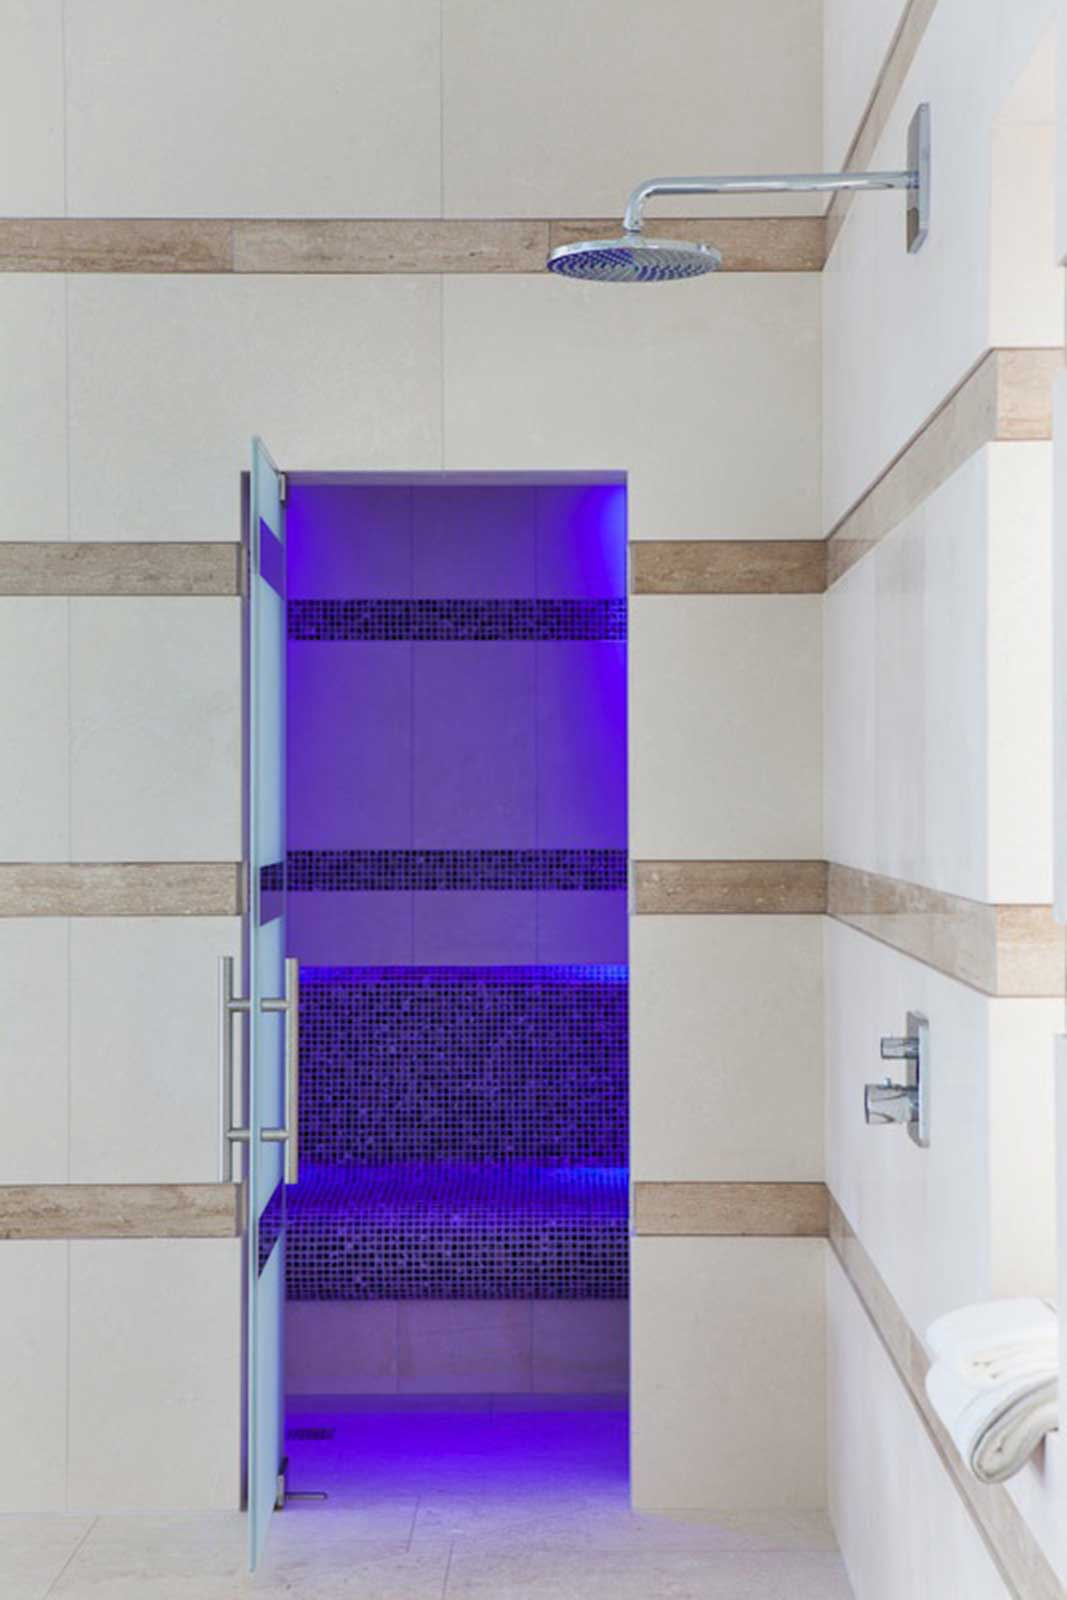 Frameless Striped Glass Shower Door, with Lighting